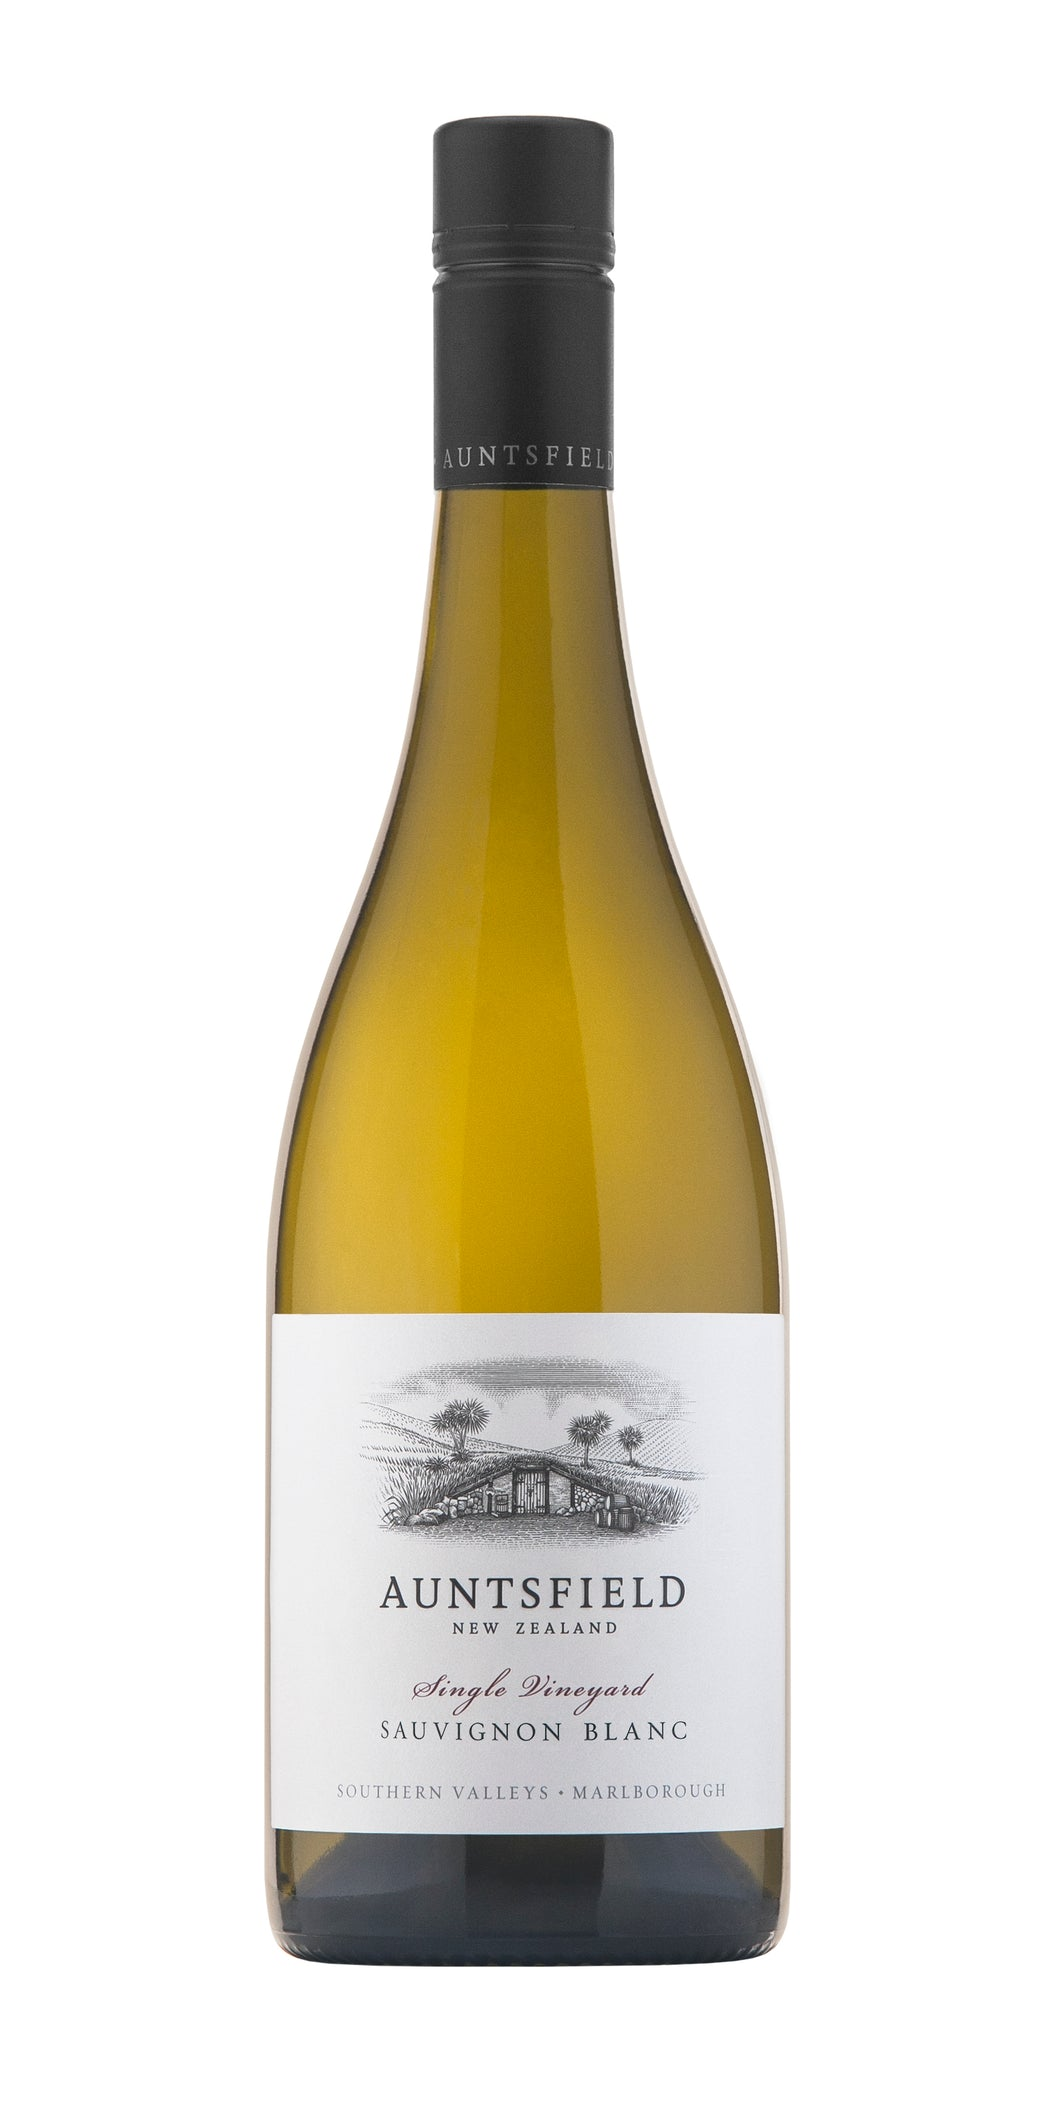 AUNTSFIELD SINGLE VINEYARD SAUV BLANC 2017